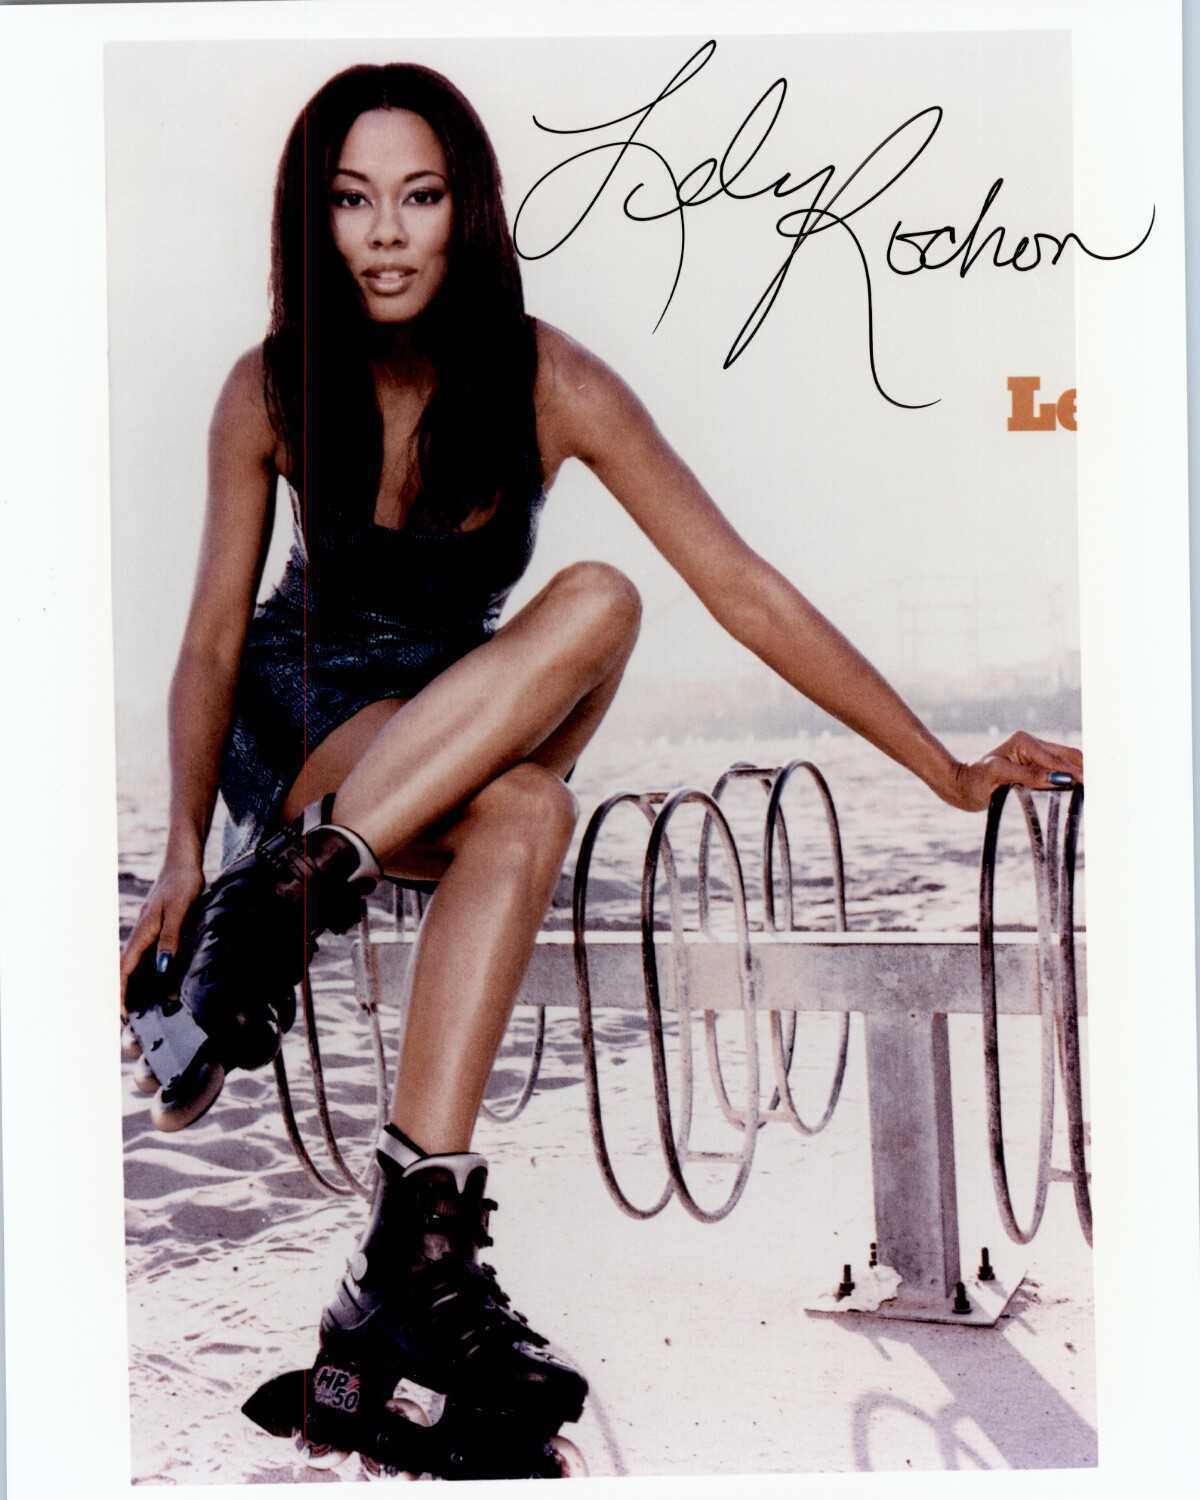 Primary image for Lela Rochon Signed Autographed Glossy 8x10 Photo